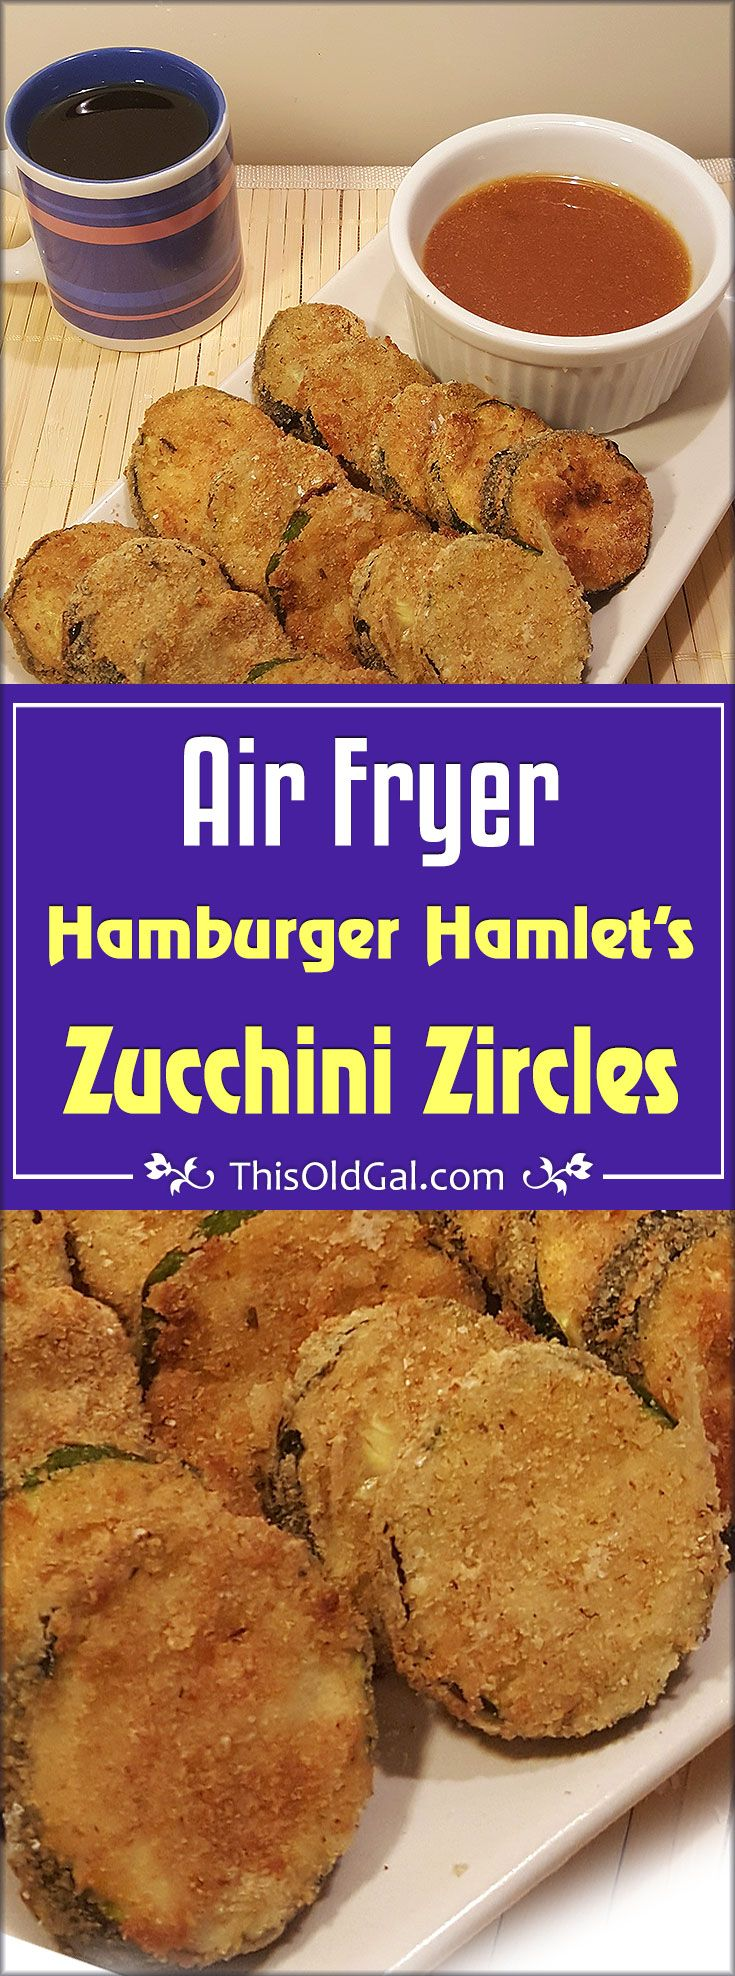 Air Fryer Hamburger Hamlet's Zucchini Zircles with Apricot Sauce is a healthier alternative to the original Fried Zucchini Zircles. via @thisoldgalcooks